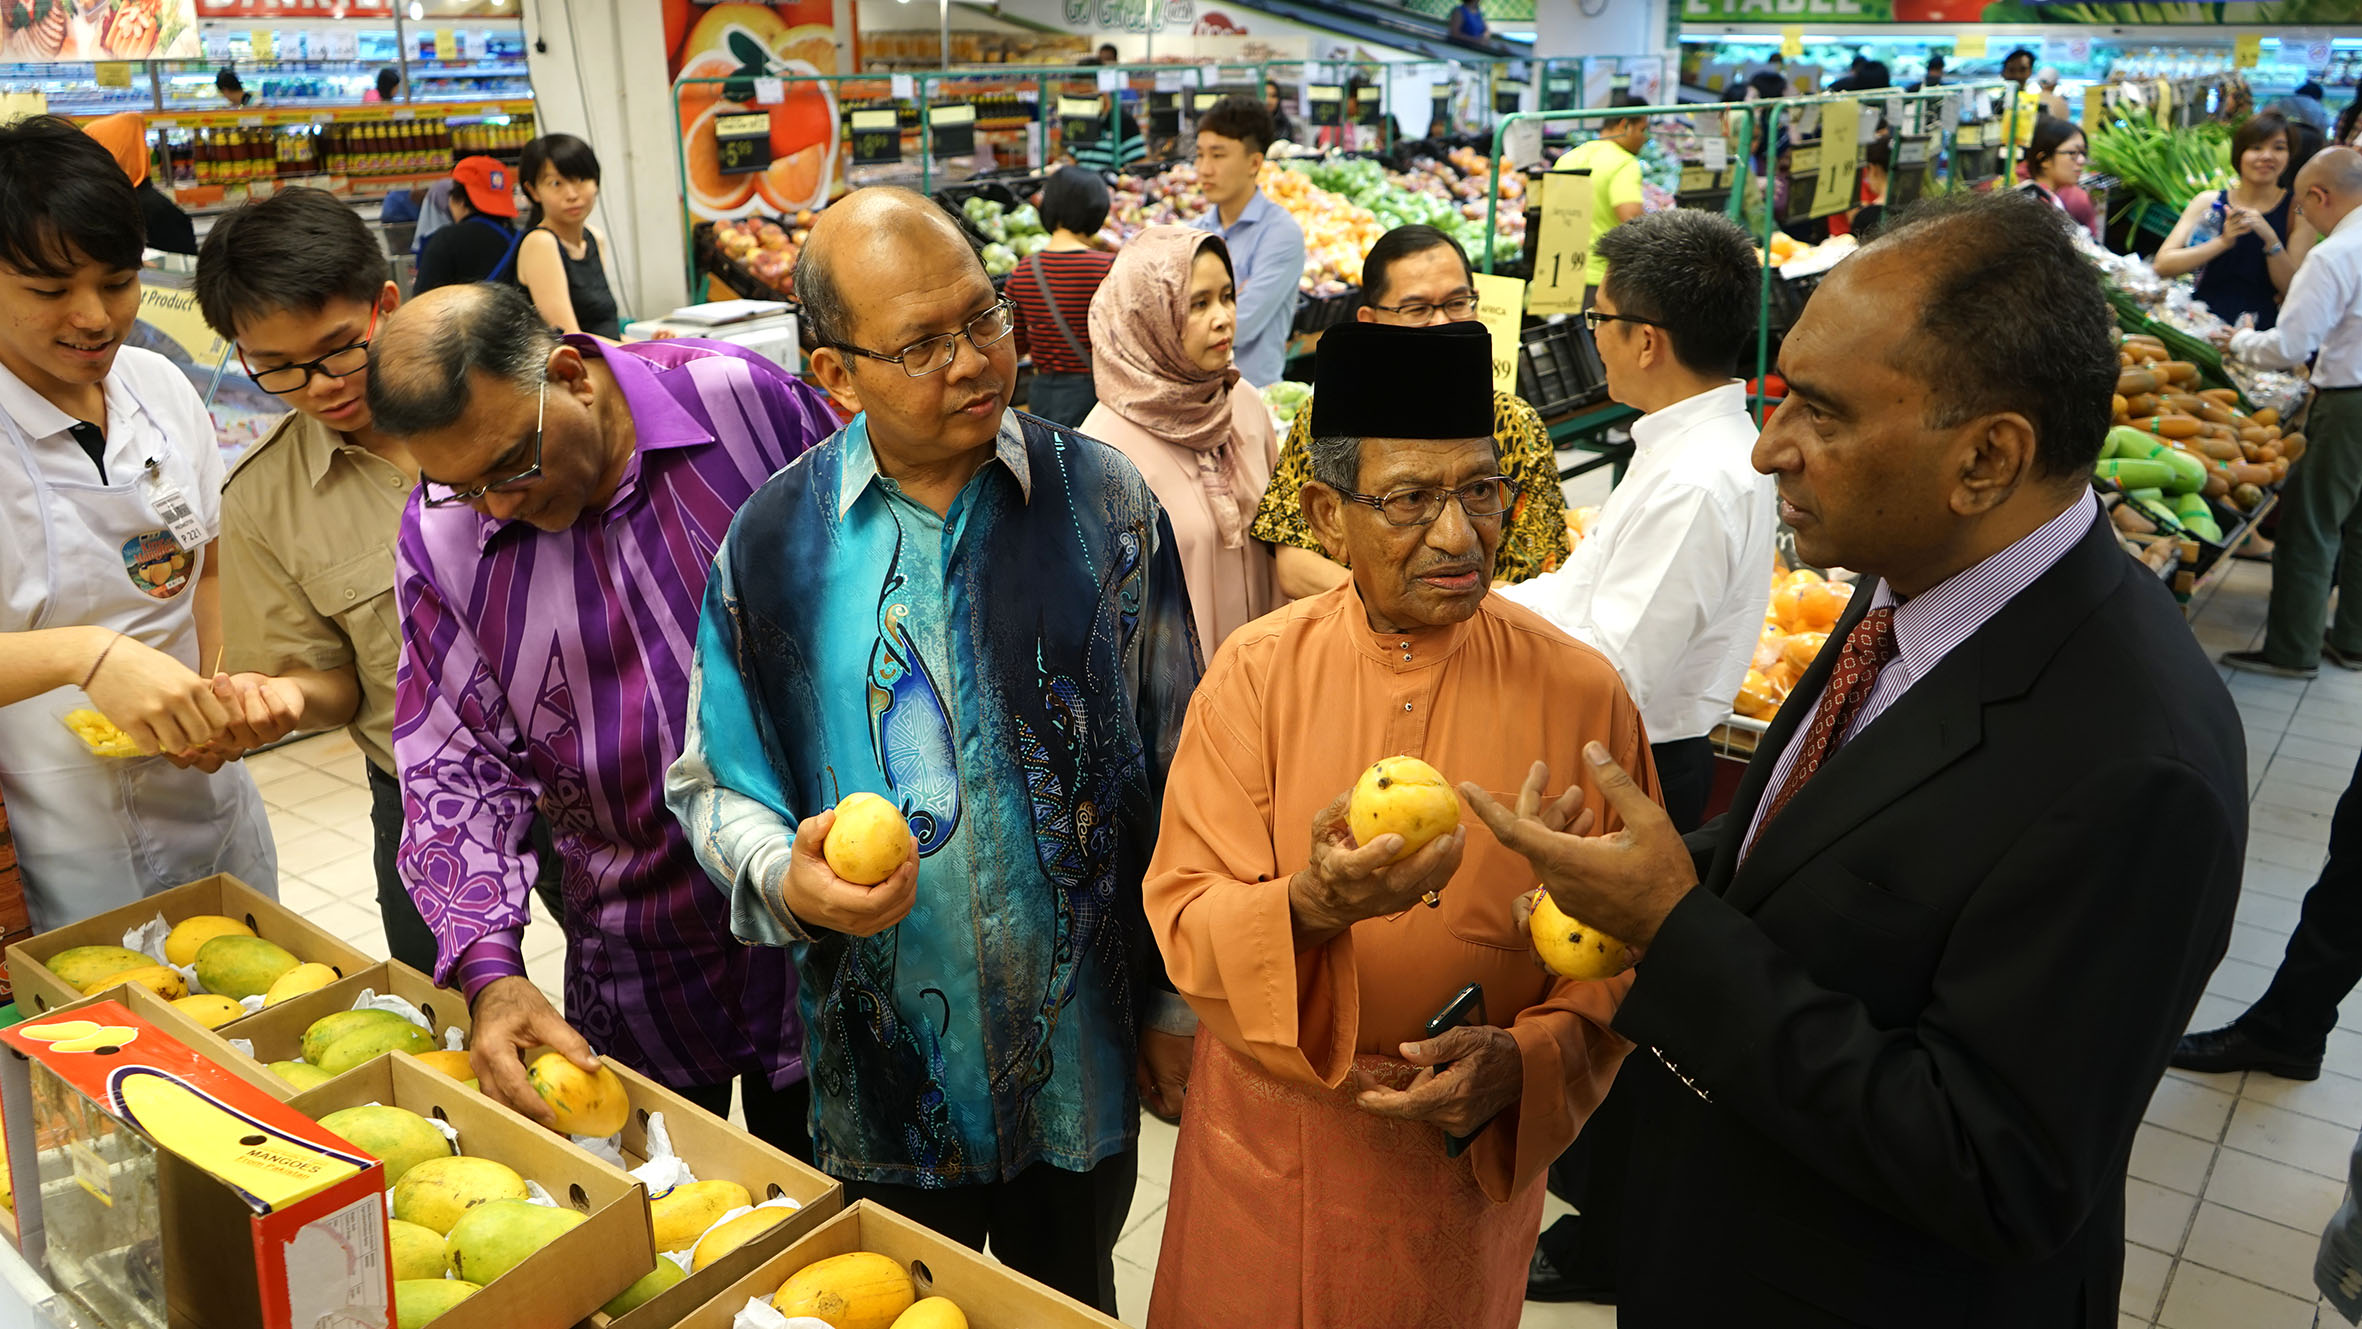 Checking out the Pakistan mango fruit display in the Sunshine Square Mall. (L-R from 3rd left) Dato Abdul Rafique, Dato' Seri Farizan, Tan Sri Yusoff Latif, Syed Hassan Raza.